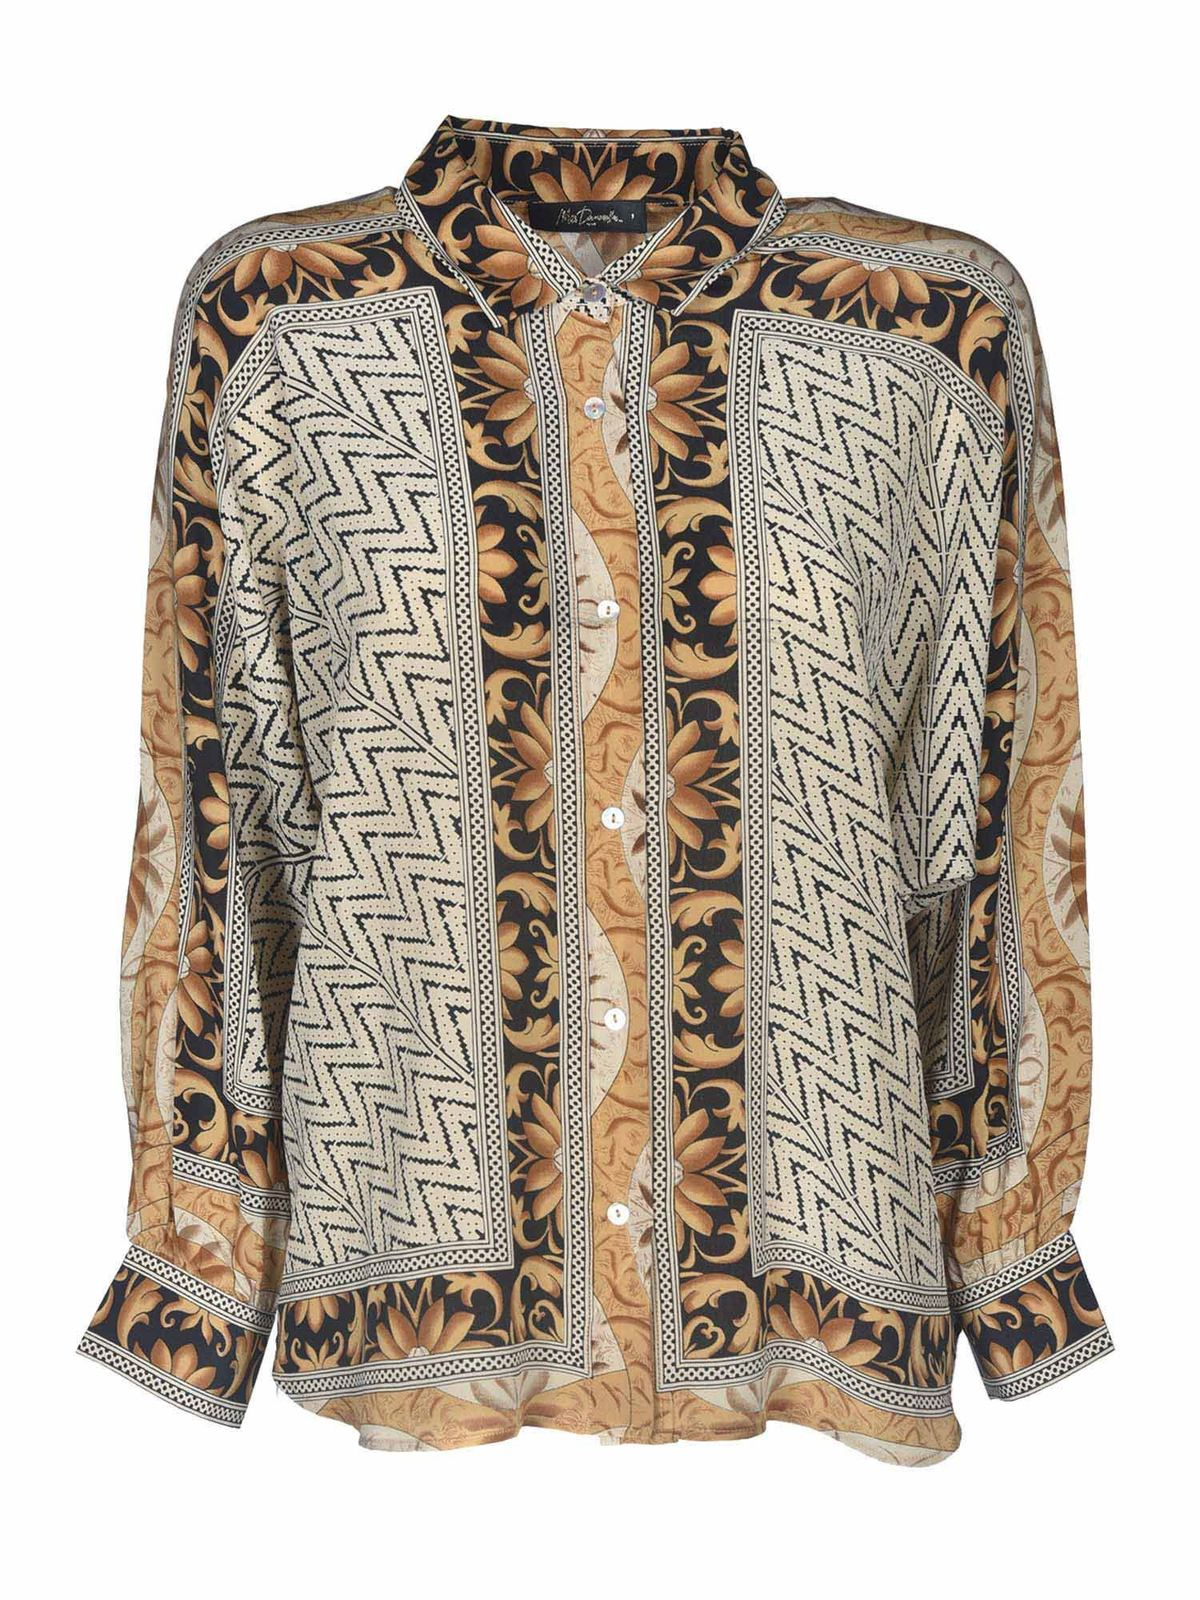 Mes Demoiselles SHALLOW  PRINTED SHIRT IN BROWN AND BEIGE